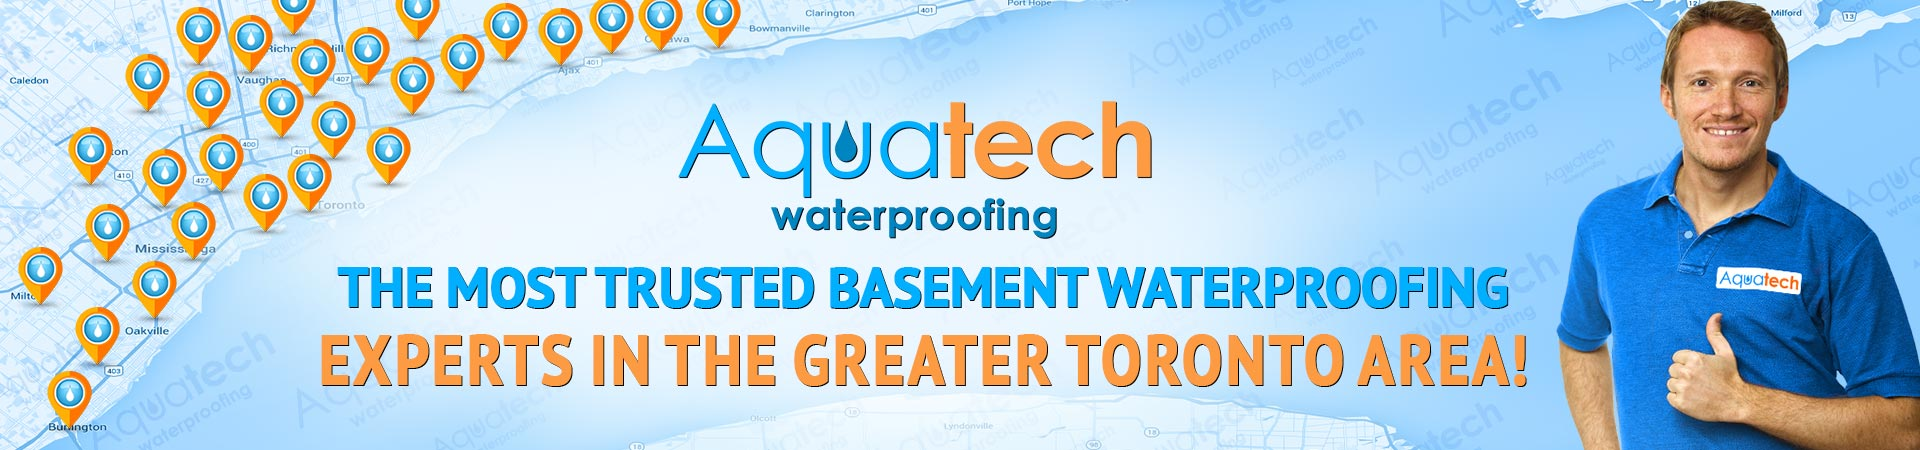 aquatech-basement-waterproofing-the-most-trusted-basement-waterproofing-experts-in-the-greater-Toronto-area